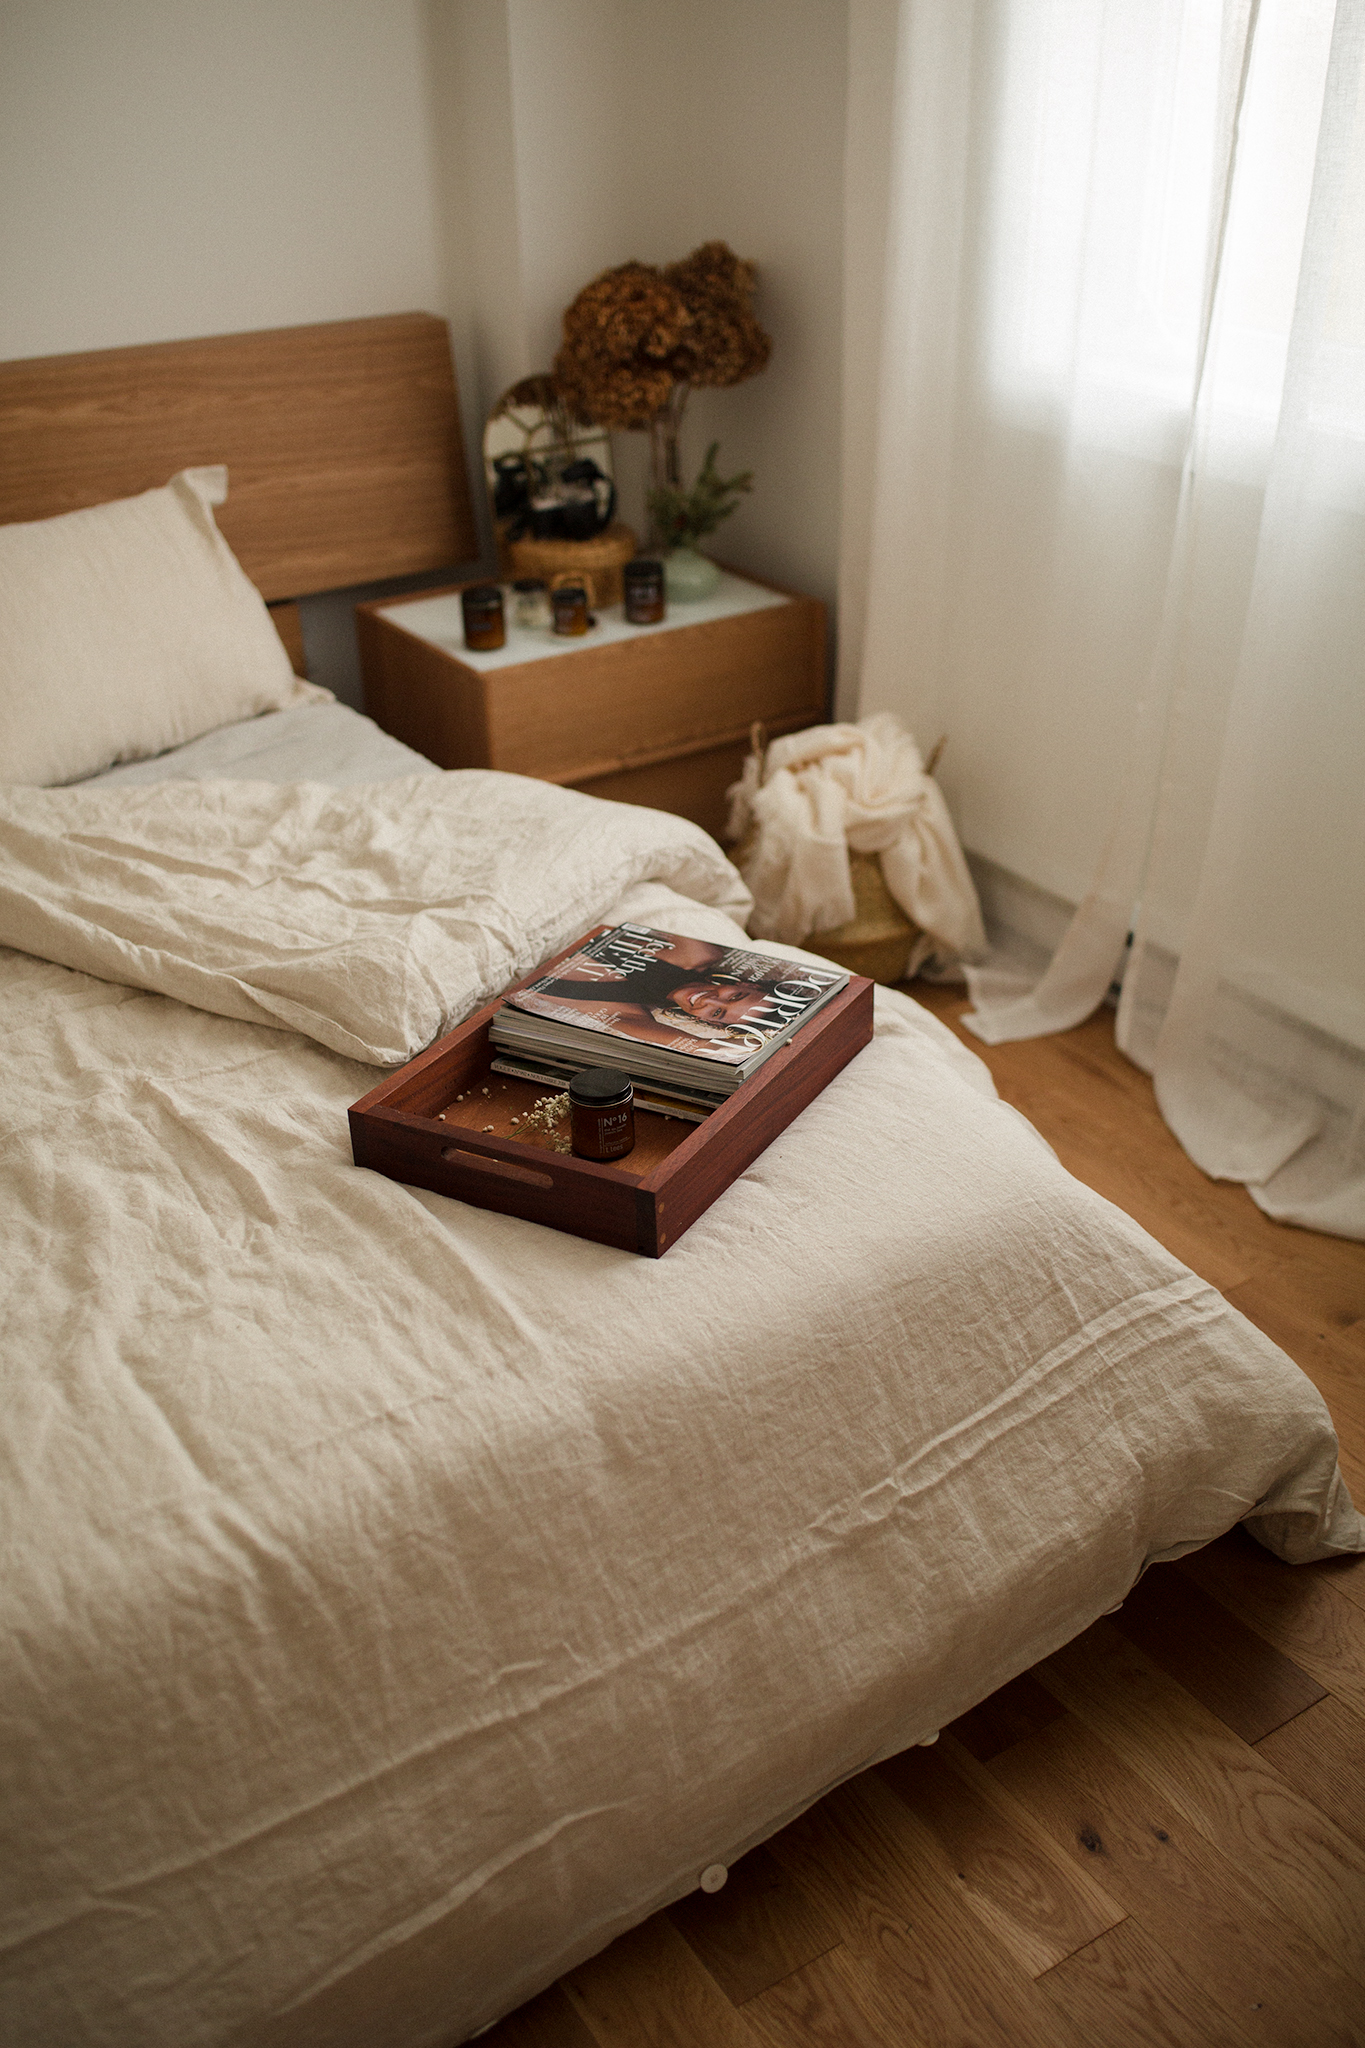 The benefits of flax linen bedding